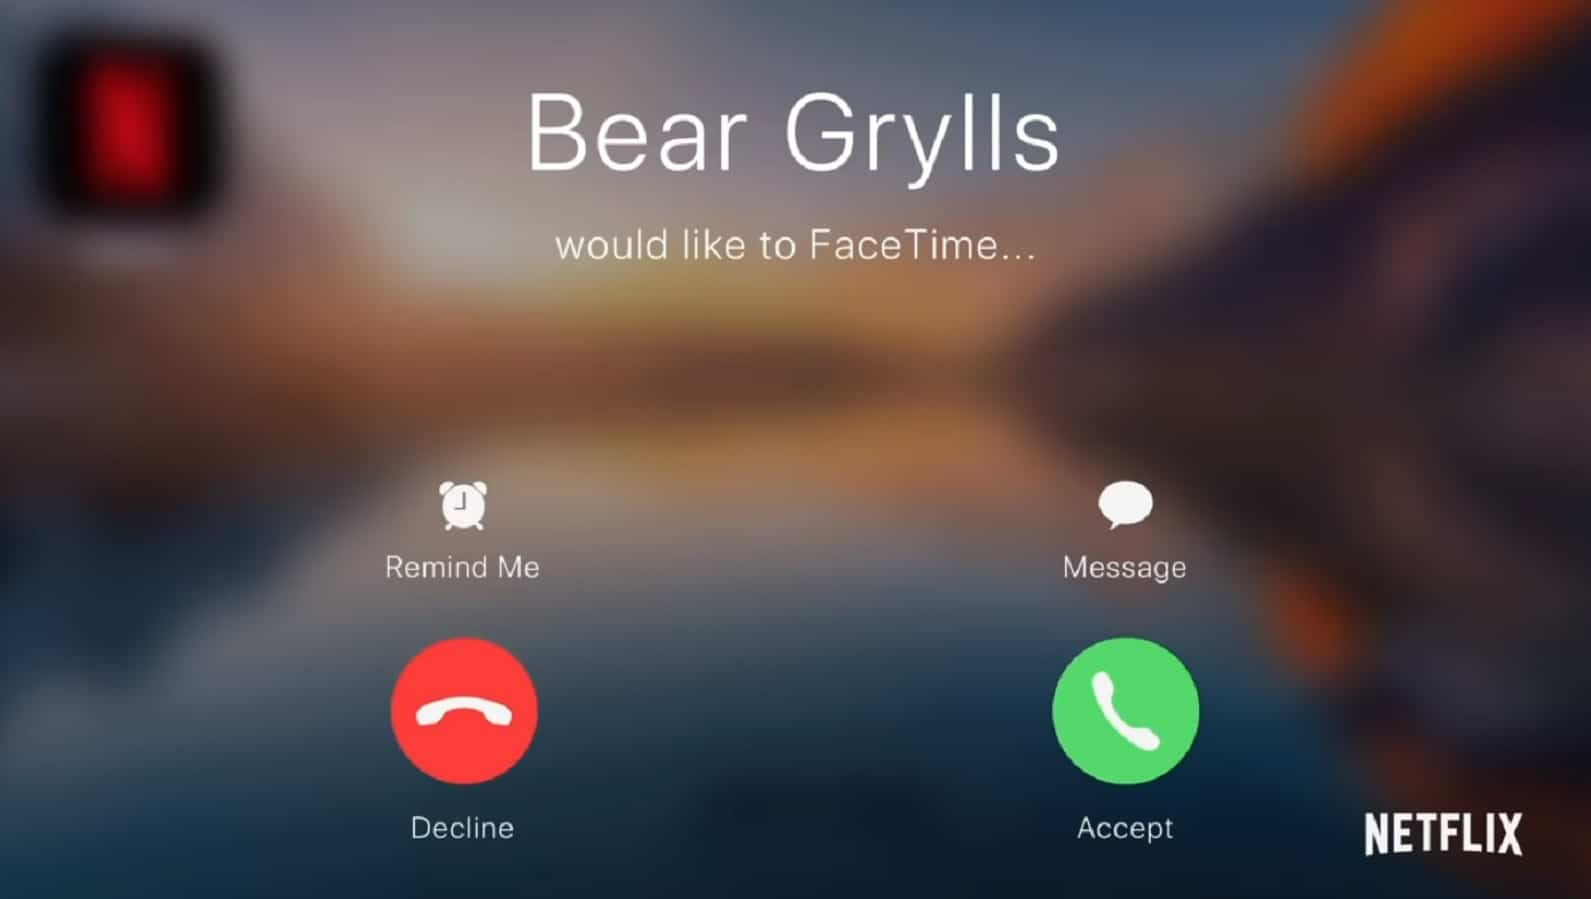 bear grylls interactive adventure